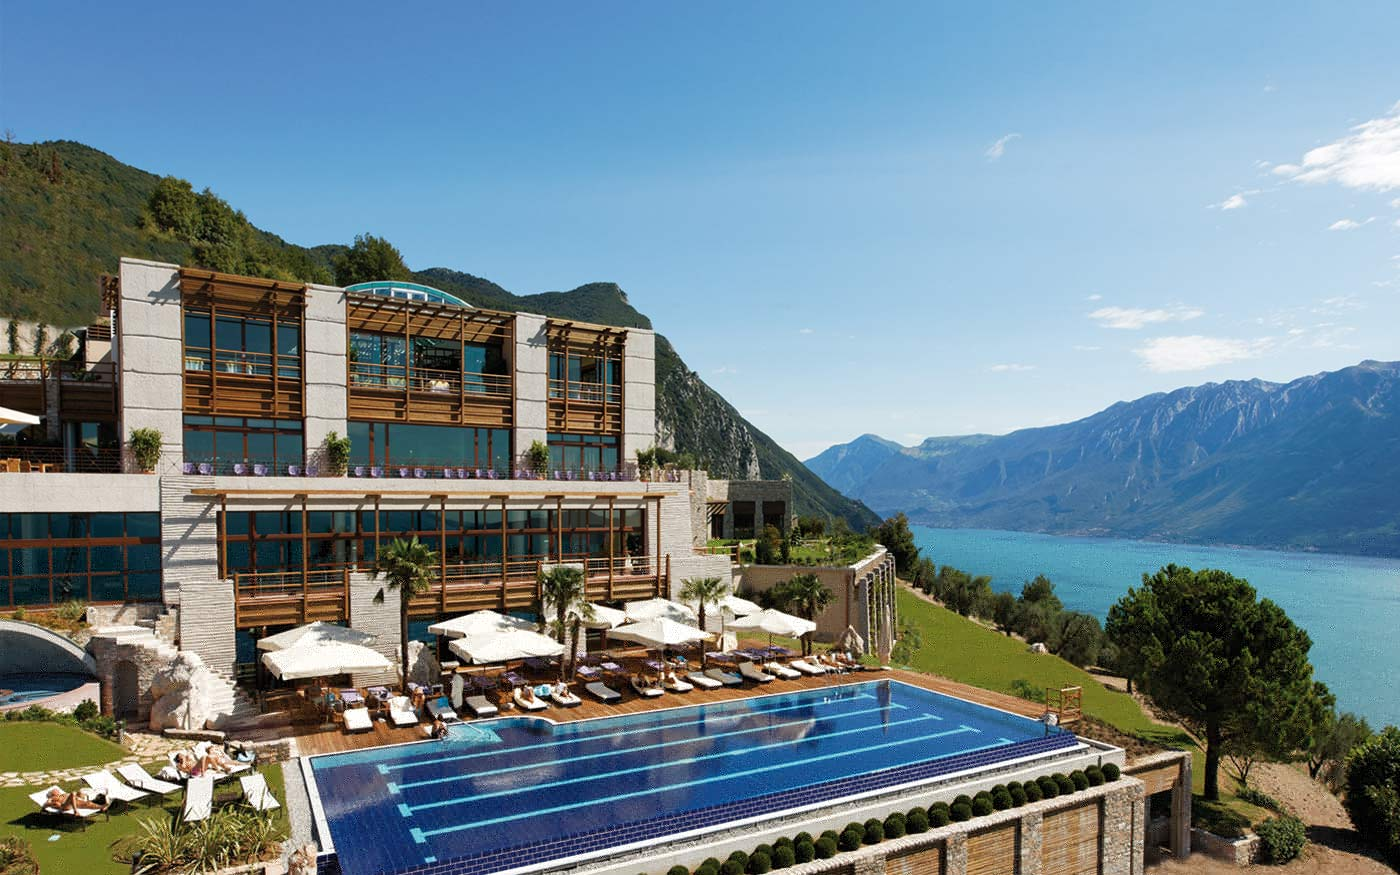 lefayspa resort